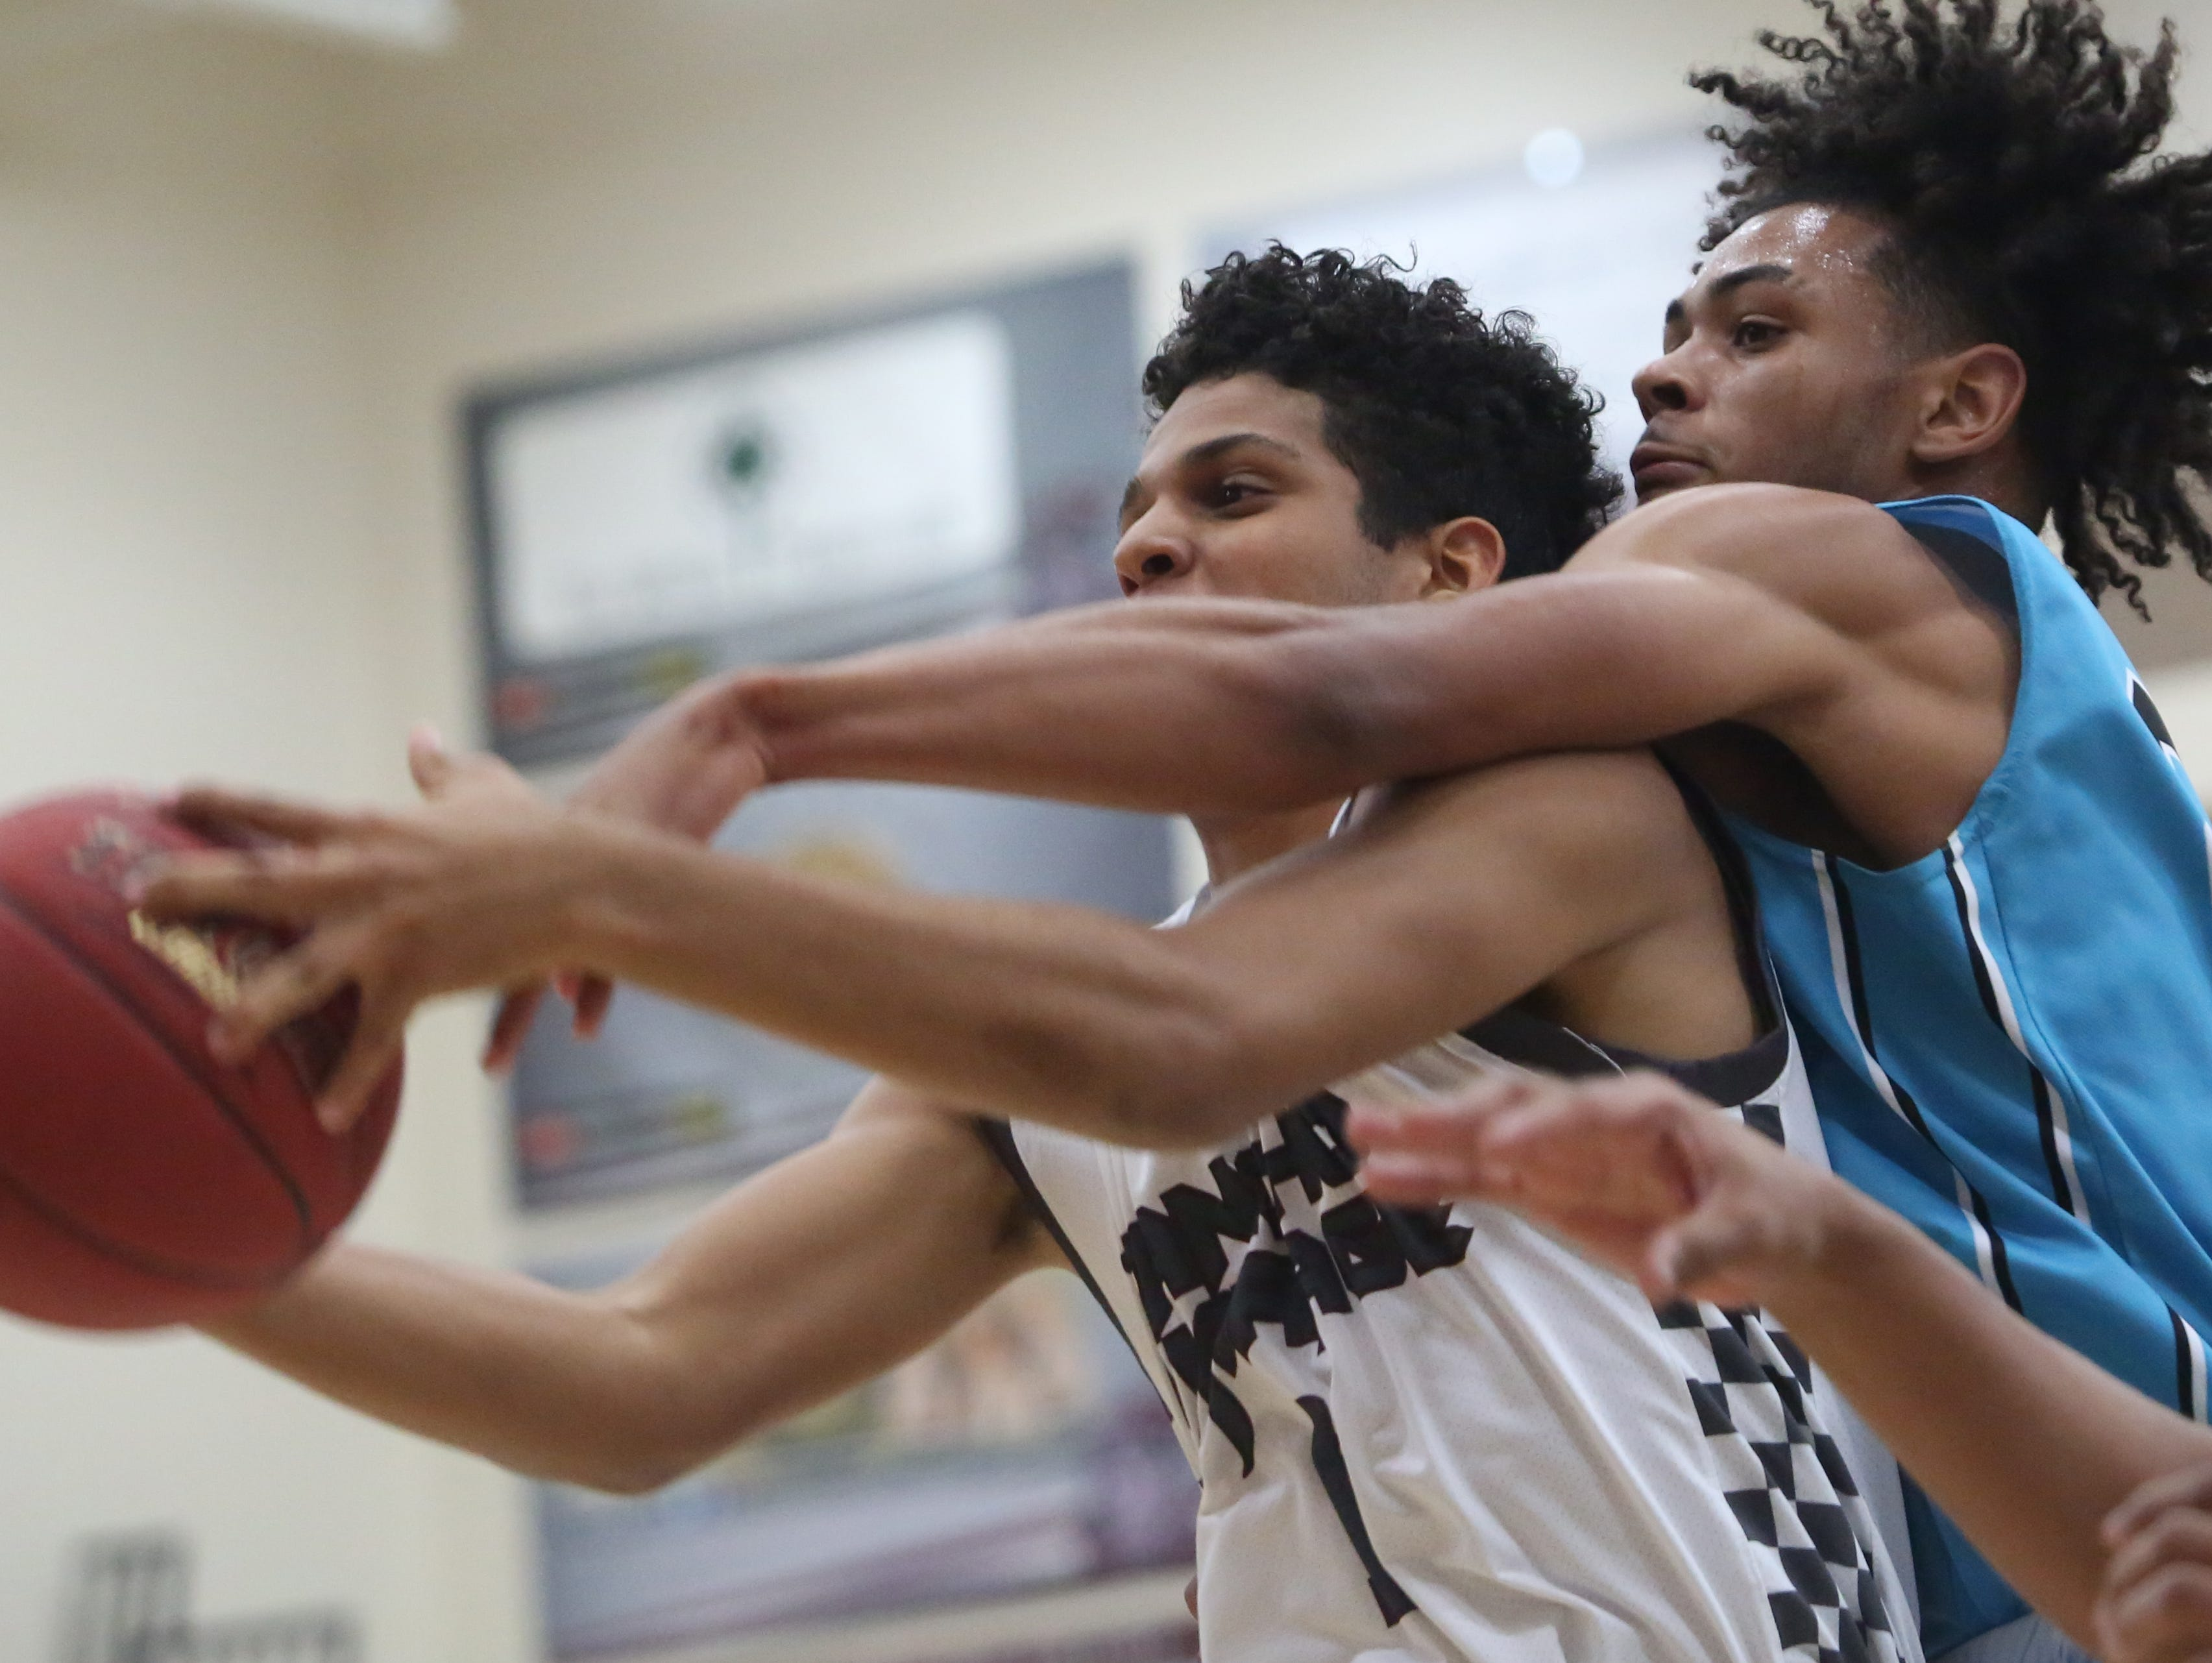 Rancho Mirage High School's Marques Prior tries to control a ball against Grand Terrace High School at Rancho Mirage on February 15, 2017. Rancho Mirage won the game 96-56.